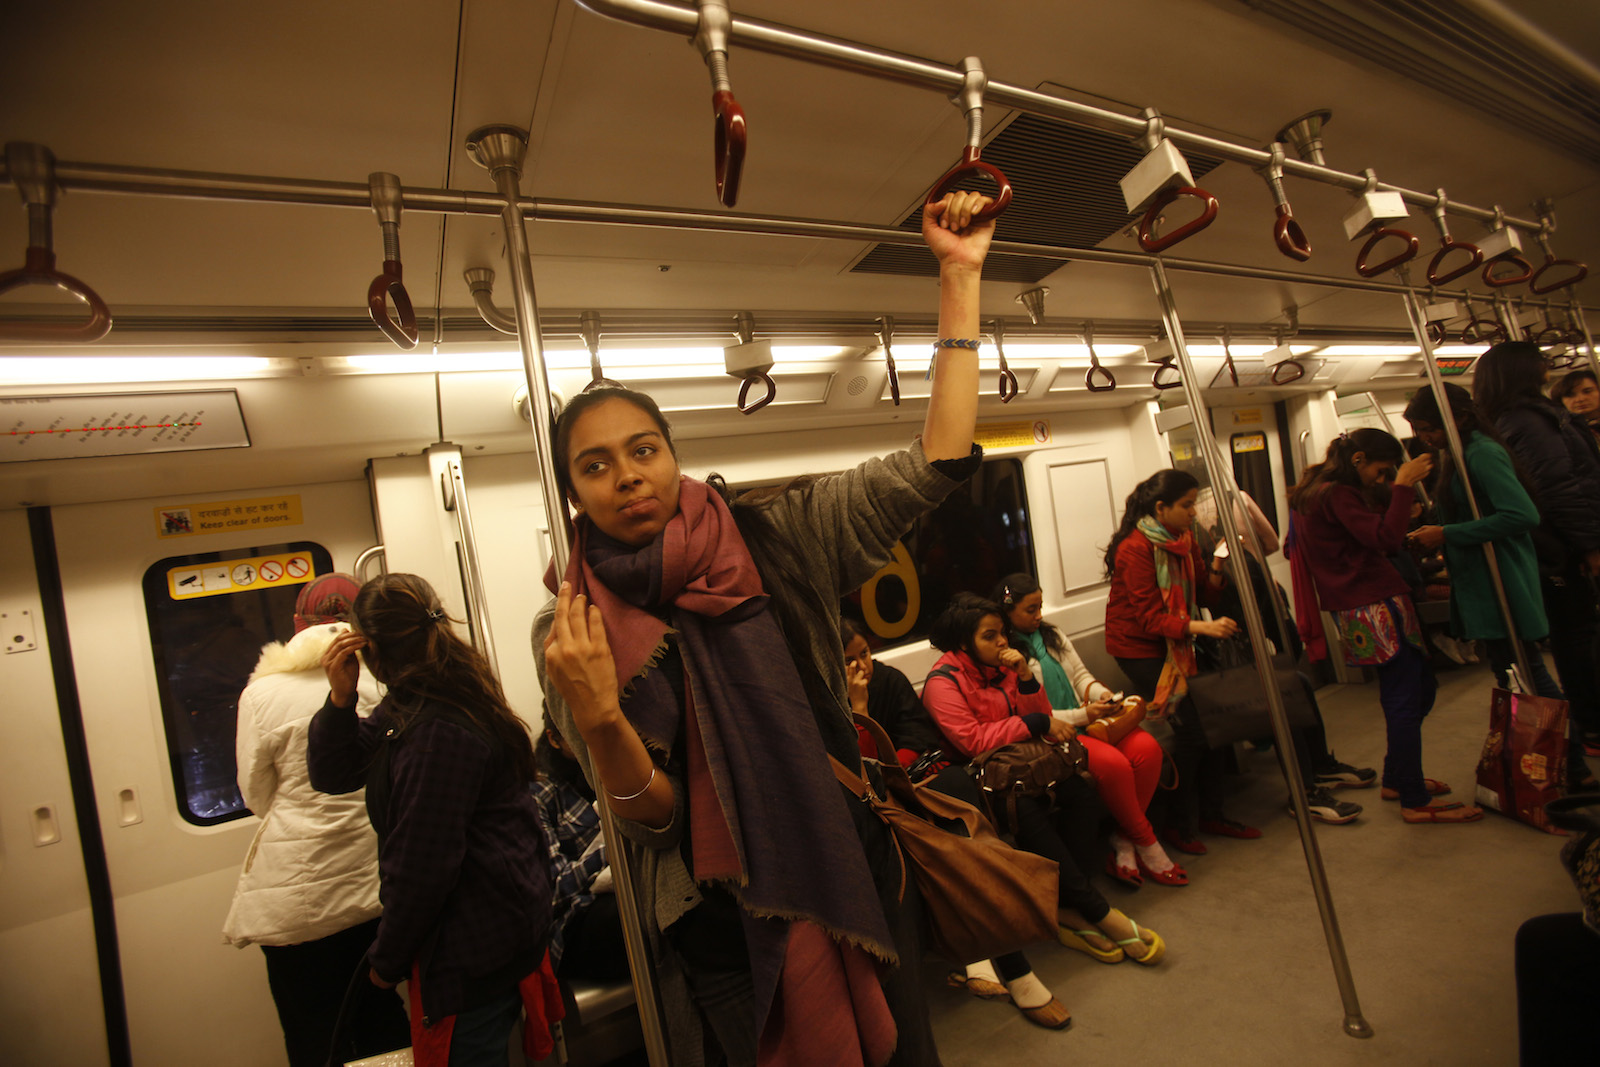 """Simrat, 24, who works for a non-profit arts organisation, travels in the women's compartment of a metro in New Delhi January 12, 2013. """"I made the decision to use public transport as my primary way of moving through the city because I really believe that it is my right to be able to use public space, just as much as it is of any man's"""", Simrat said. """"Not using the metro or an auto or a bus or a cycle rickshaw (because it might not be a safe thing to do) is not an option in my mind because if I stop myself from living my life in ways that are most convenient to me, I'm giving into fear and ceding my independence. I use the metro because it's the most convenient travel option for me and I will continue to do so"""". Since a medical student died after being gang raped on a bus in New Delhi, the issue of women's security in India has been under the spotlight.  Picture taken January 12, 2013.  REUTERS/Mansi Thapliyal (INDIA - Tags: CRIME LAW SOCIETY)  ATTENTION EDITORS: PICTURE 17 OF 20 FOR PACKAGE 'VOICES OF INDIAN WOMEN' SEARCH 'MANSI WOMEN' FOR ALL IMAGES - RTR3CS8O"""